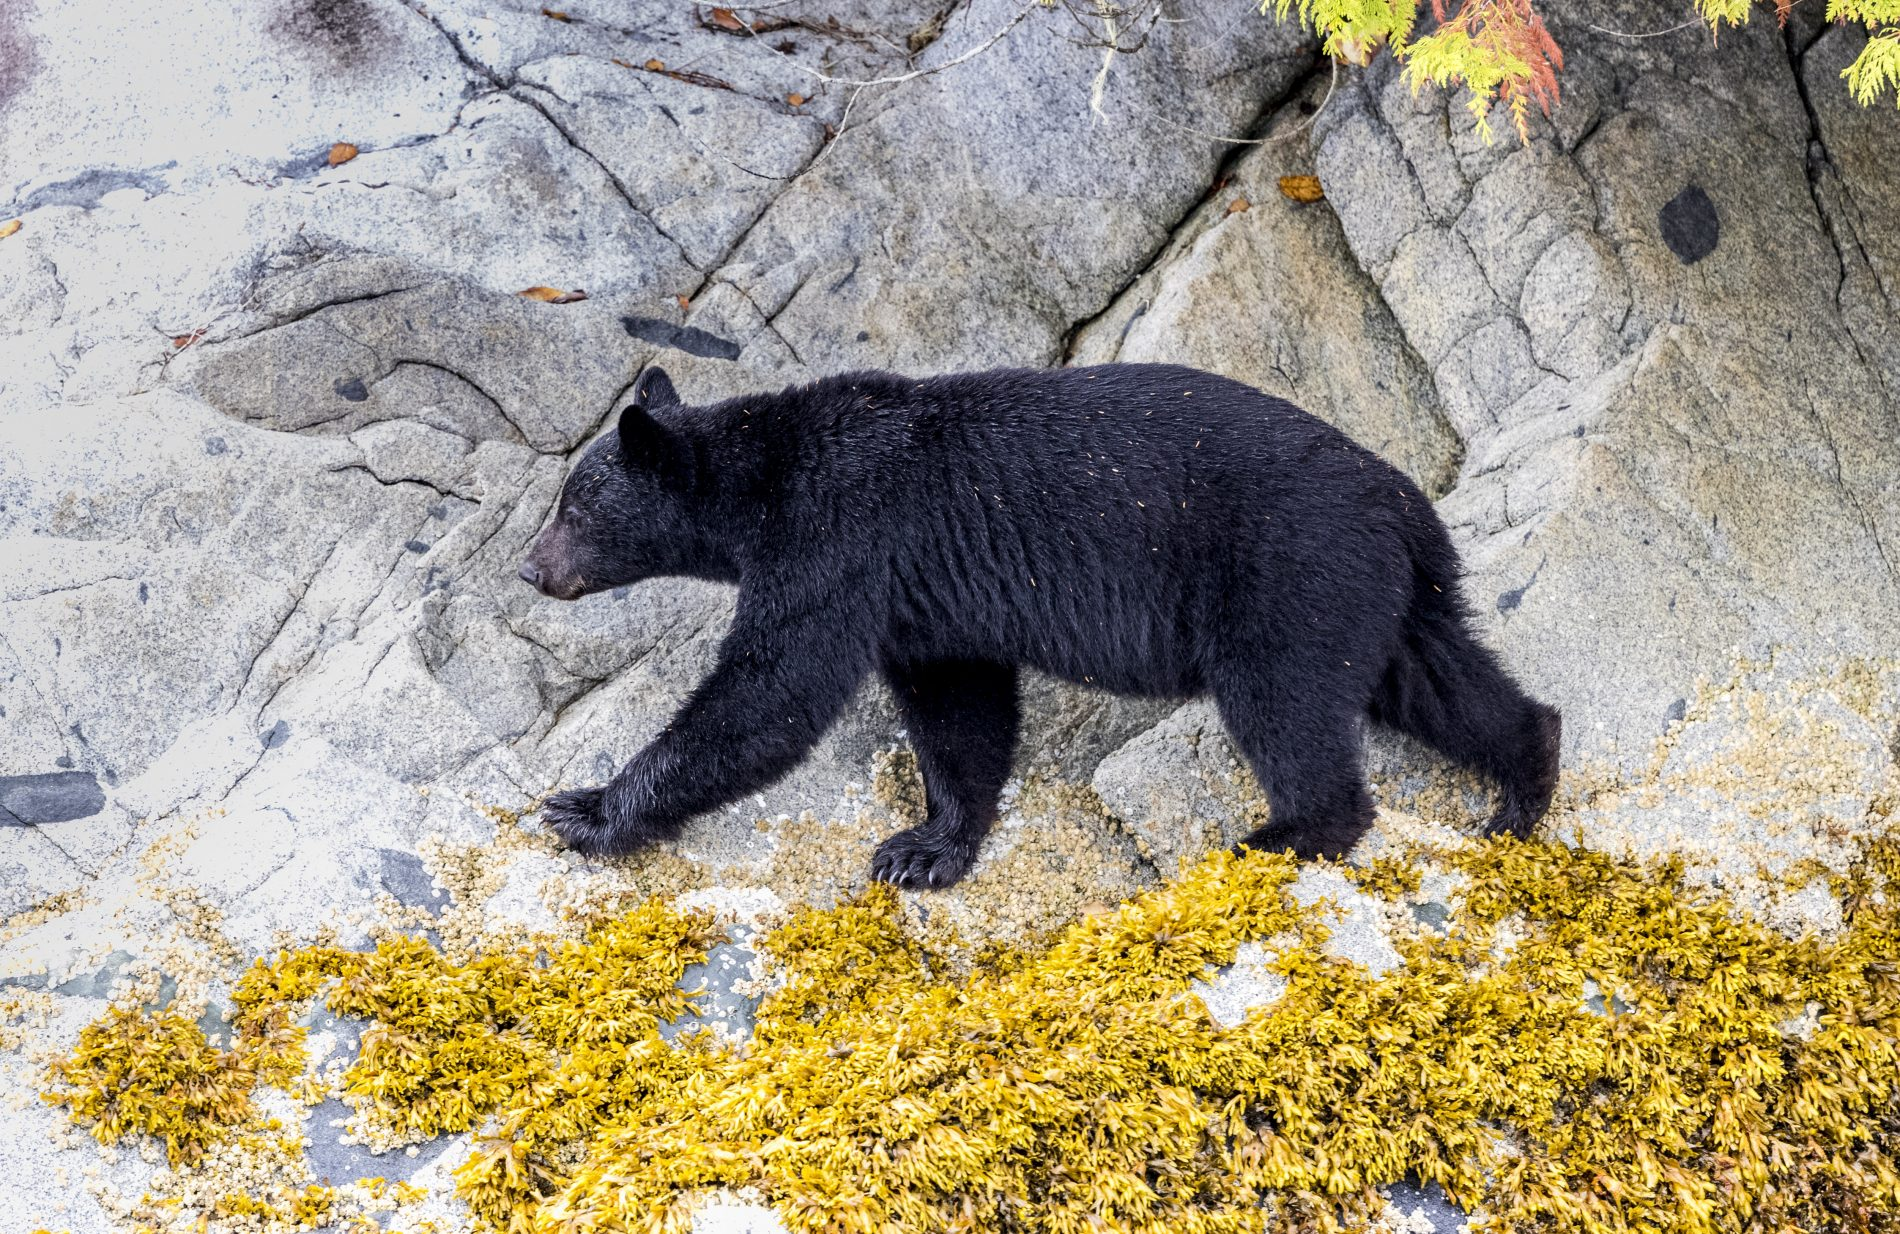 Grizzly and Black Bears in British Columbia